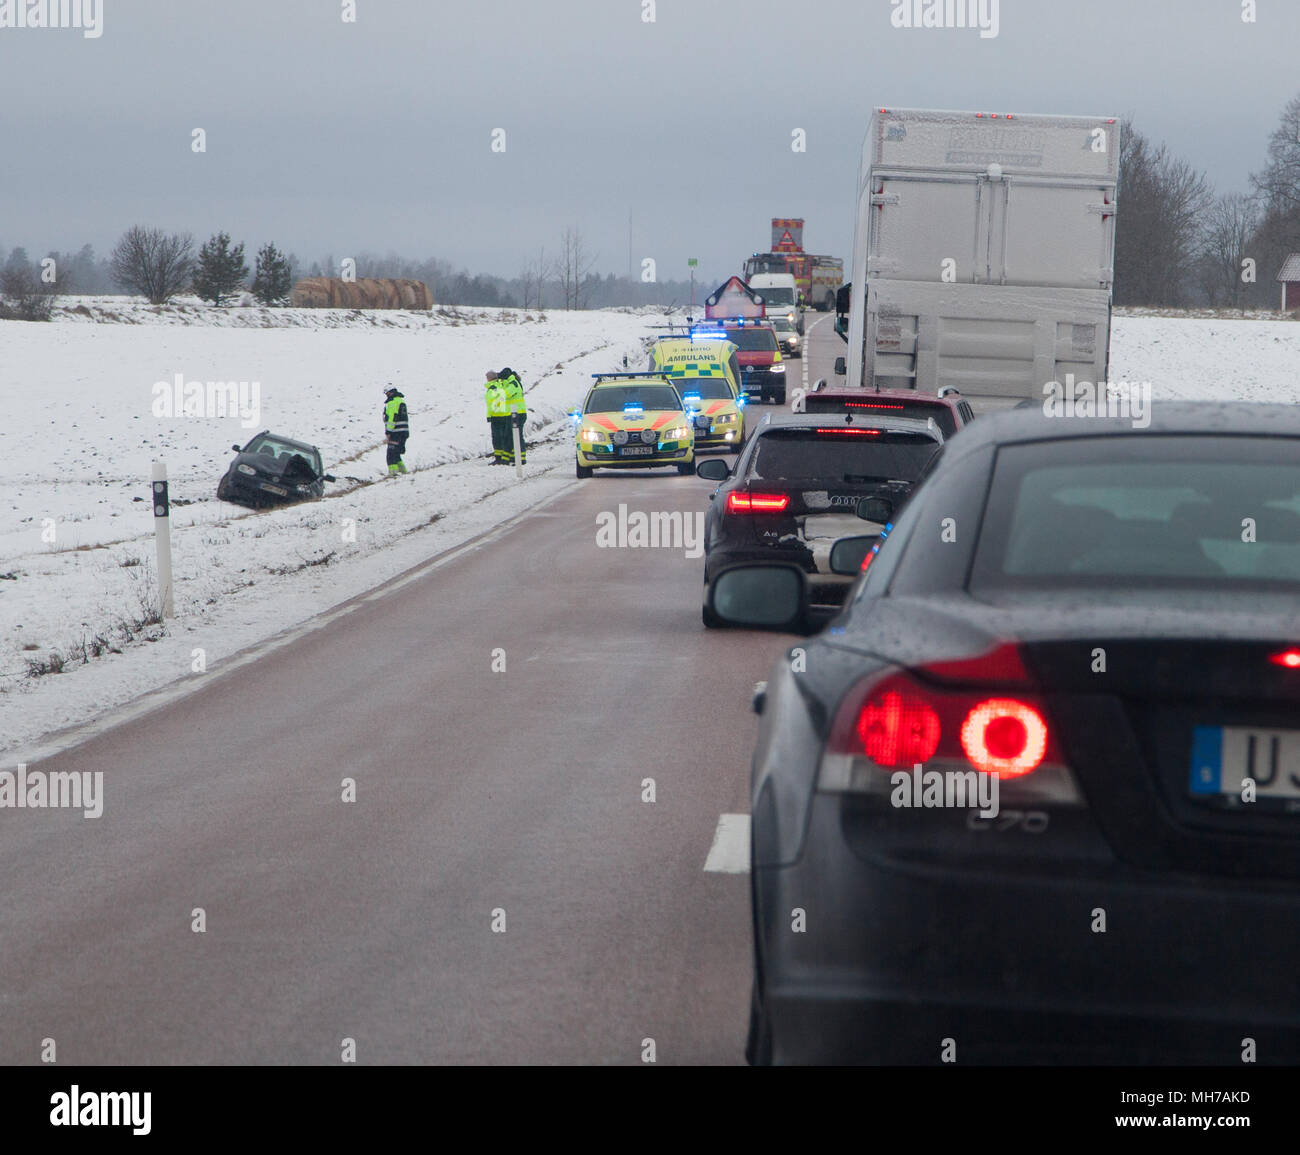 QUEUE in traffic after a fatal accident during winter 2018 - Stock Image